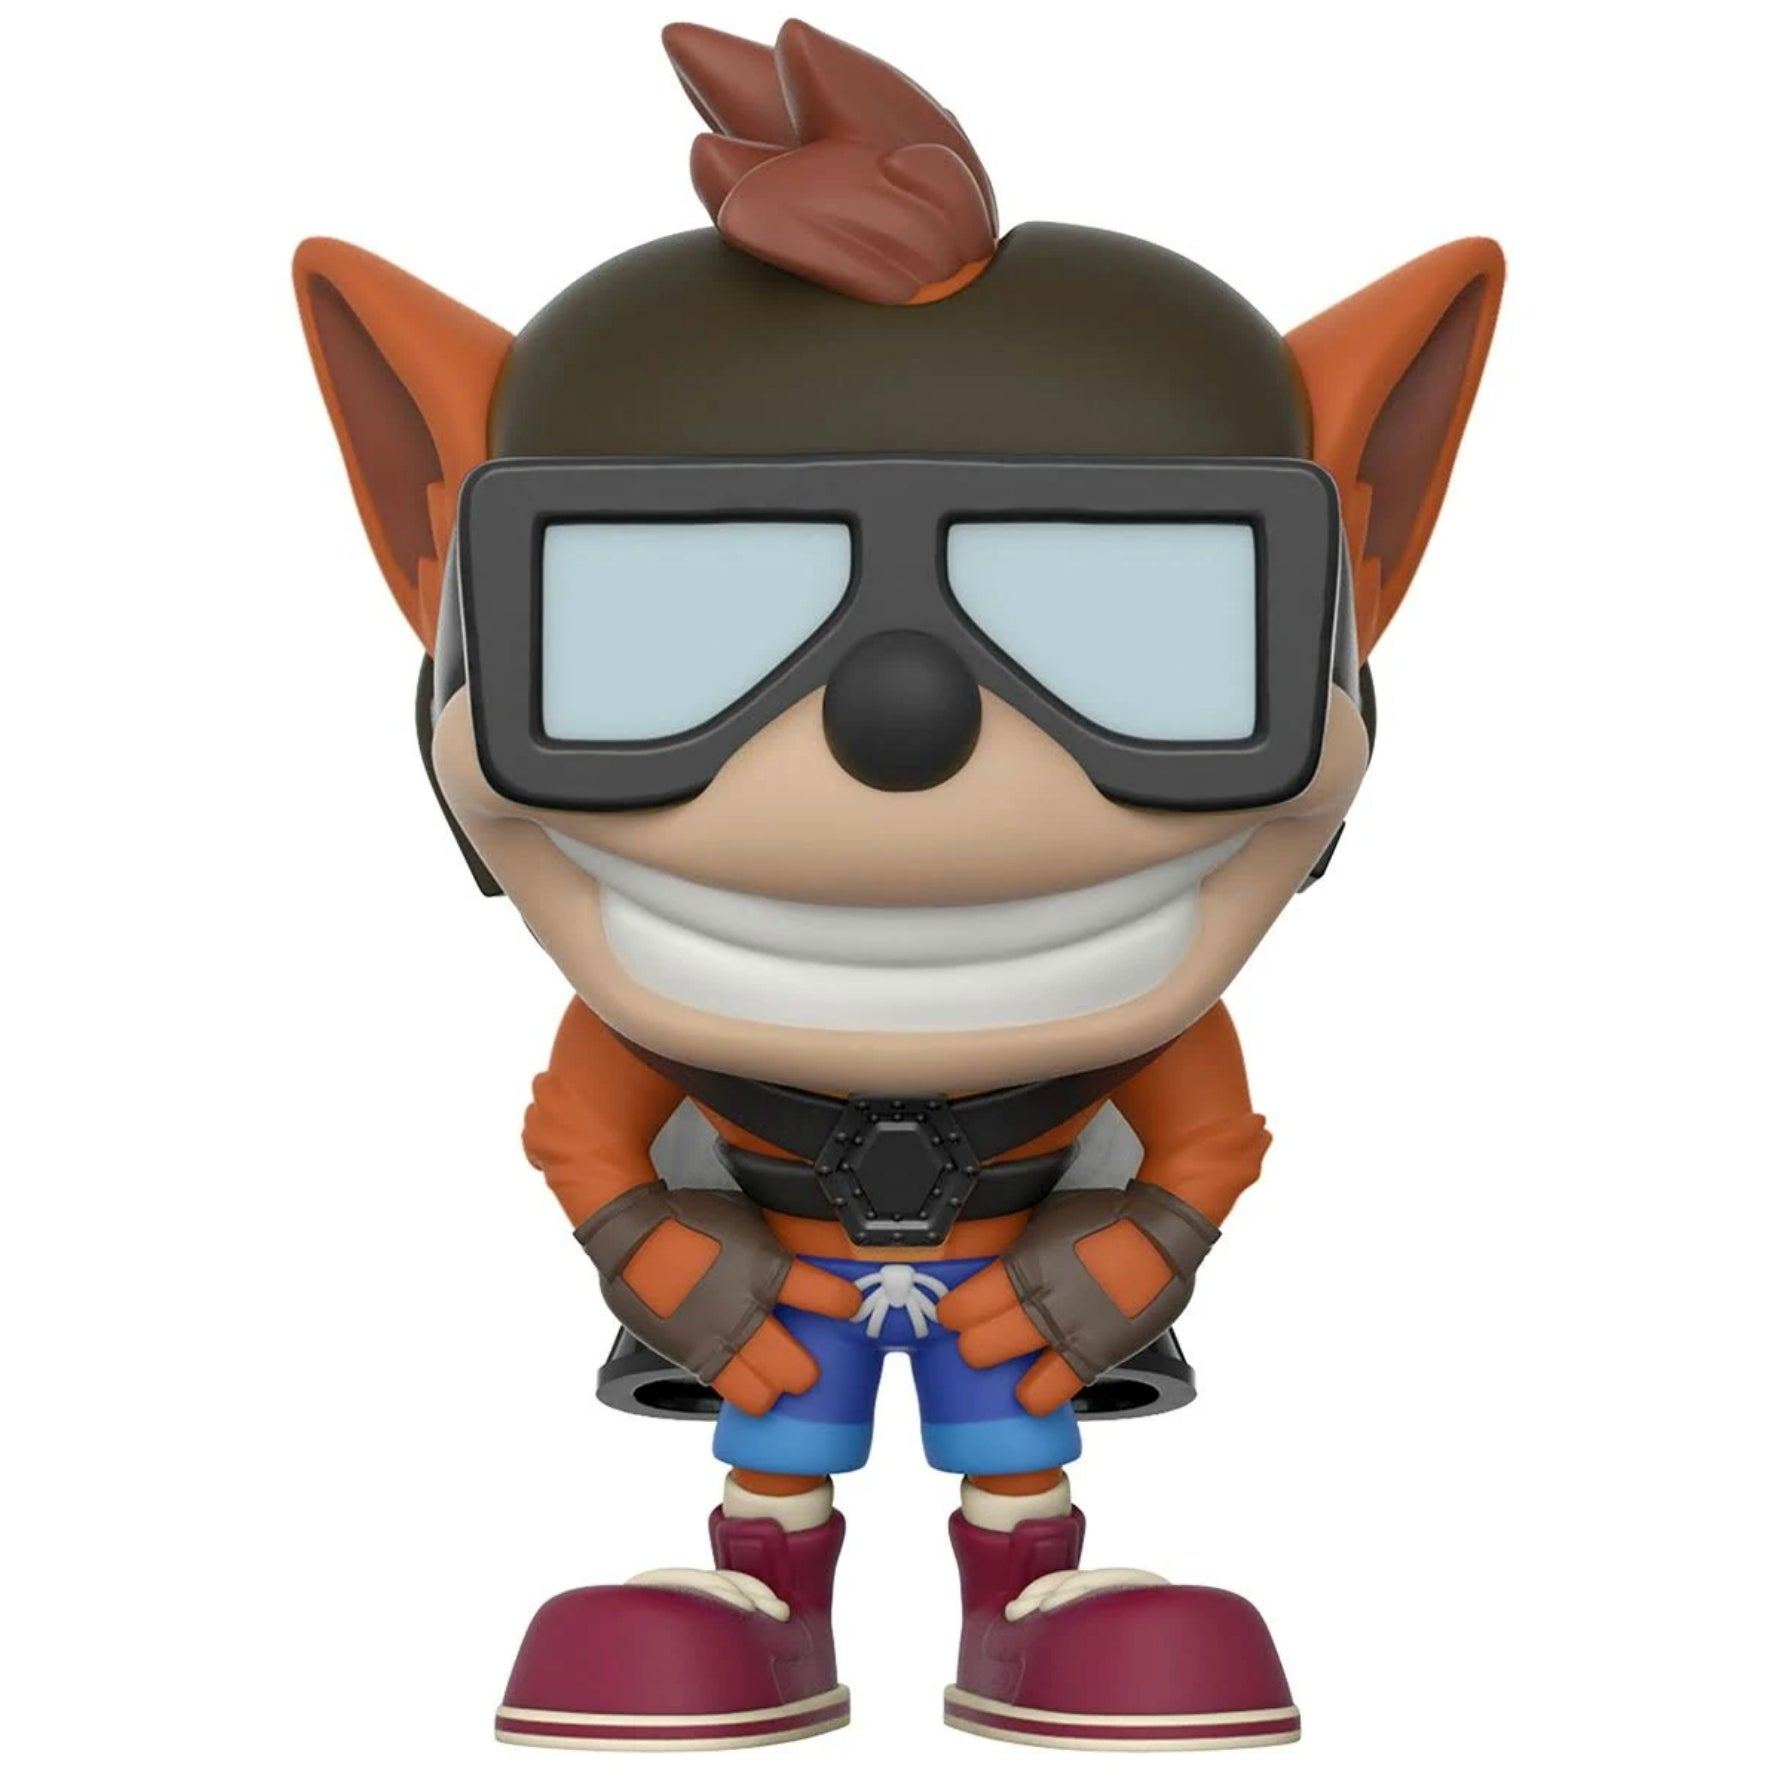 Funko Pop! Games Crash Bandicoot with Jet Pack (Special Edition)